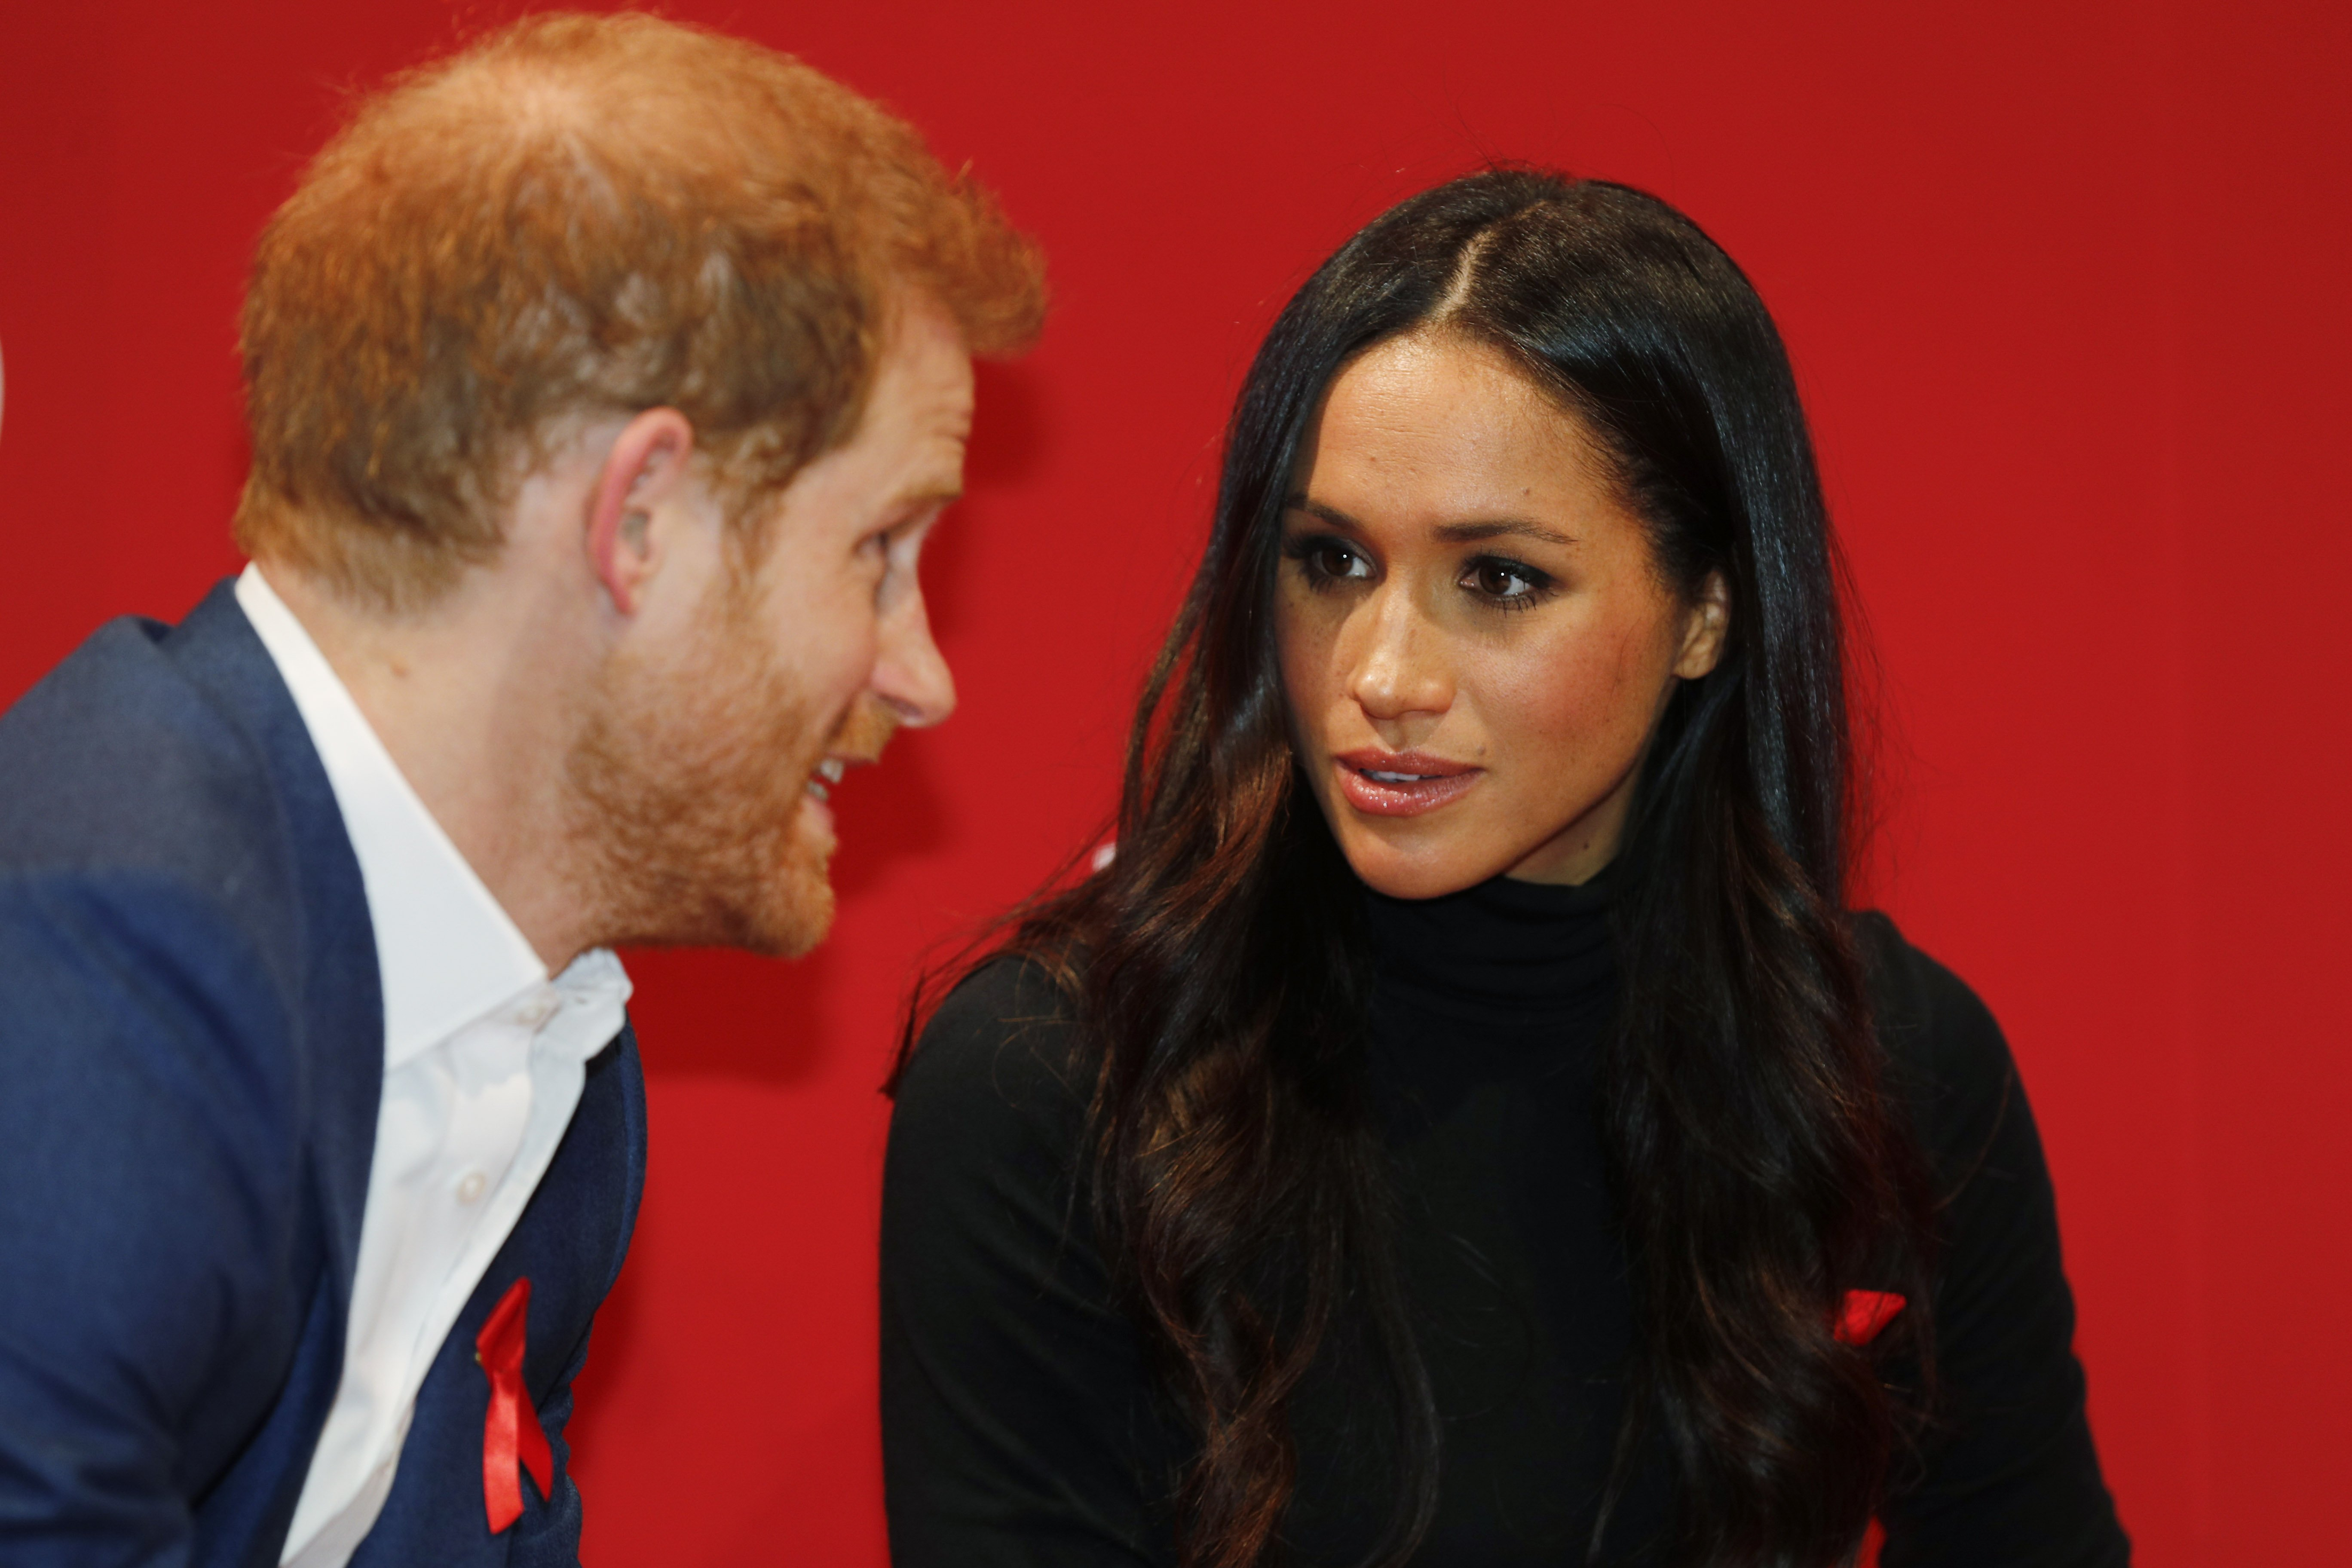 Prince Harry & Meghan Markle at the Terrence Higgins Trust World AIDS Day charity fair on Dec. 1, 2017 in England | Photo: Getty Images